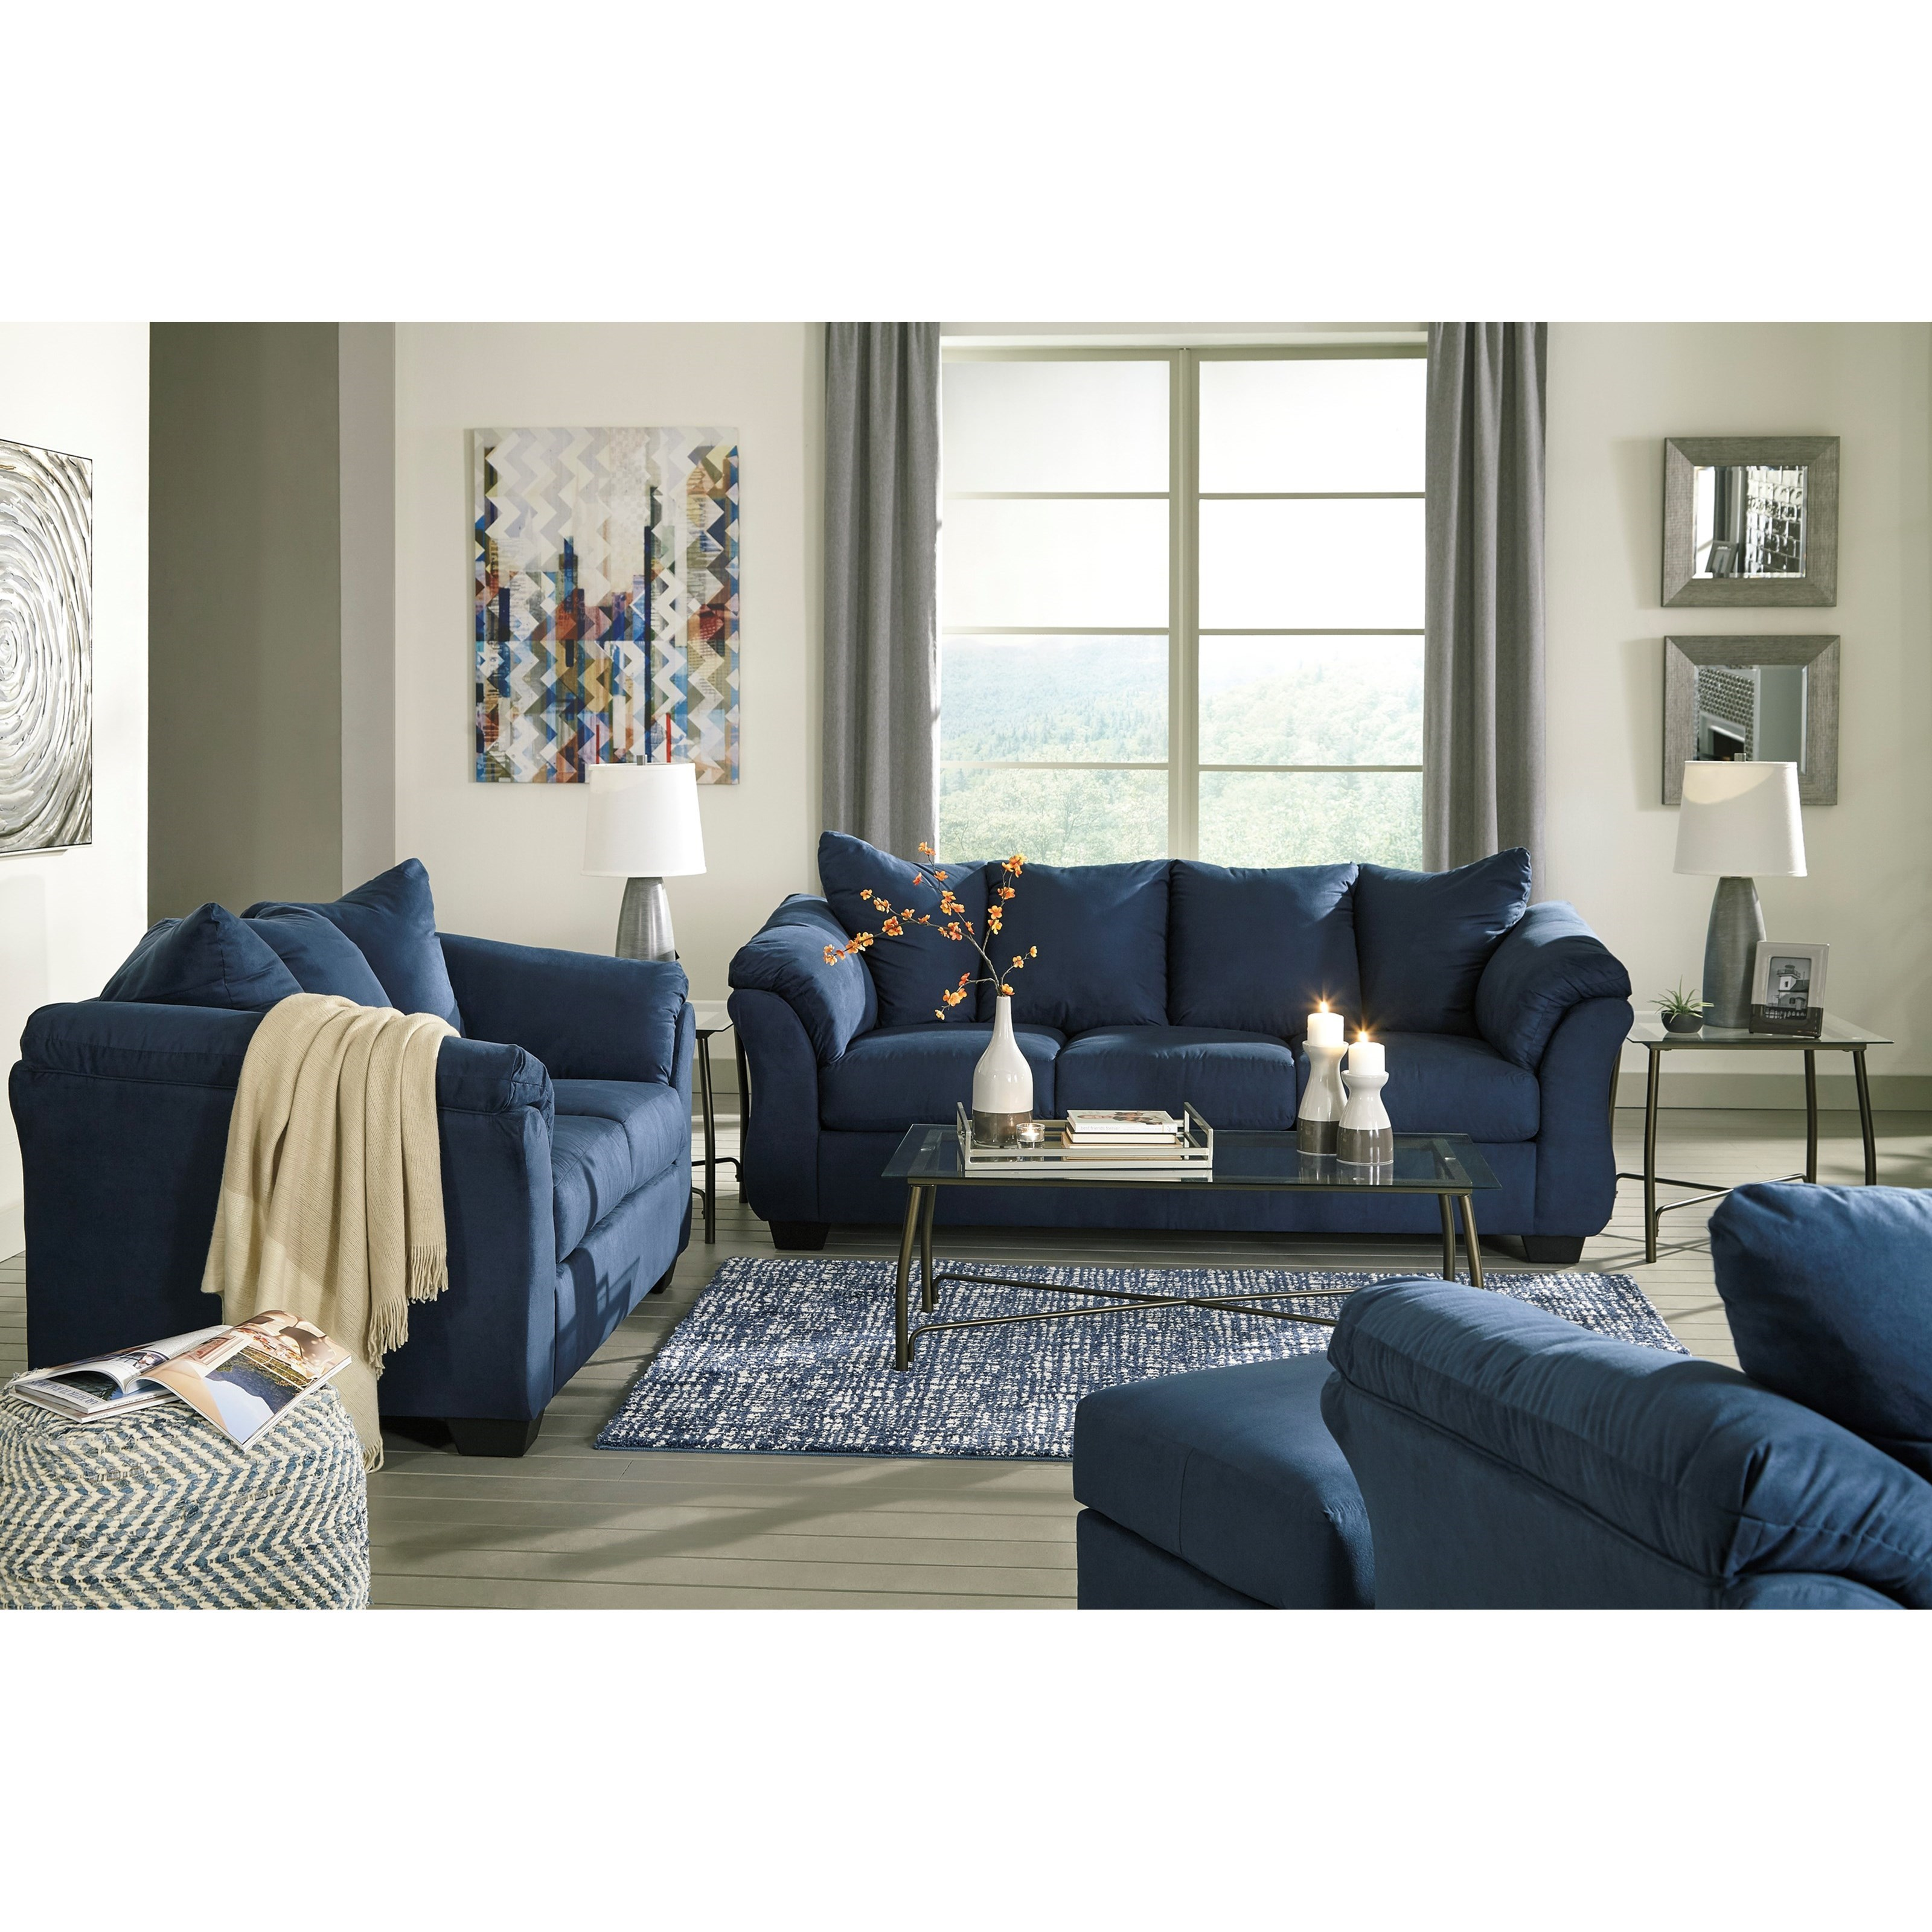 Darcy - Blue Stationary Living Room Group by Signature Design by Ashley at Furniture Barn